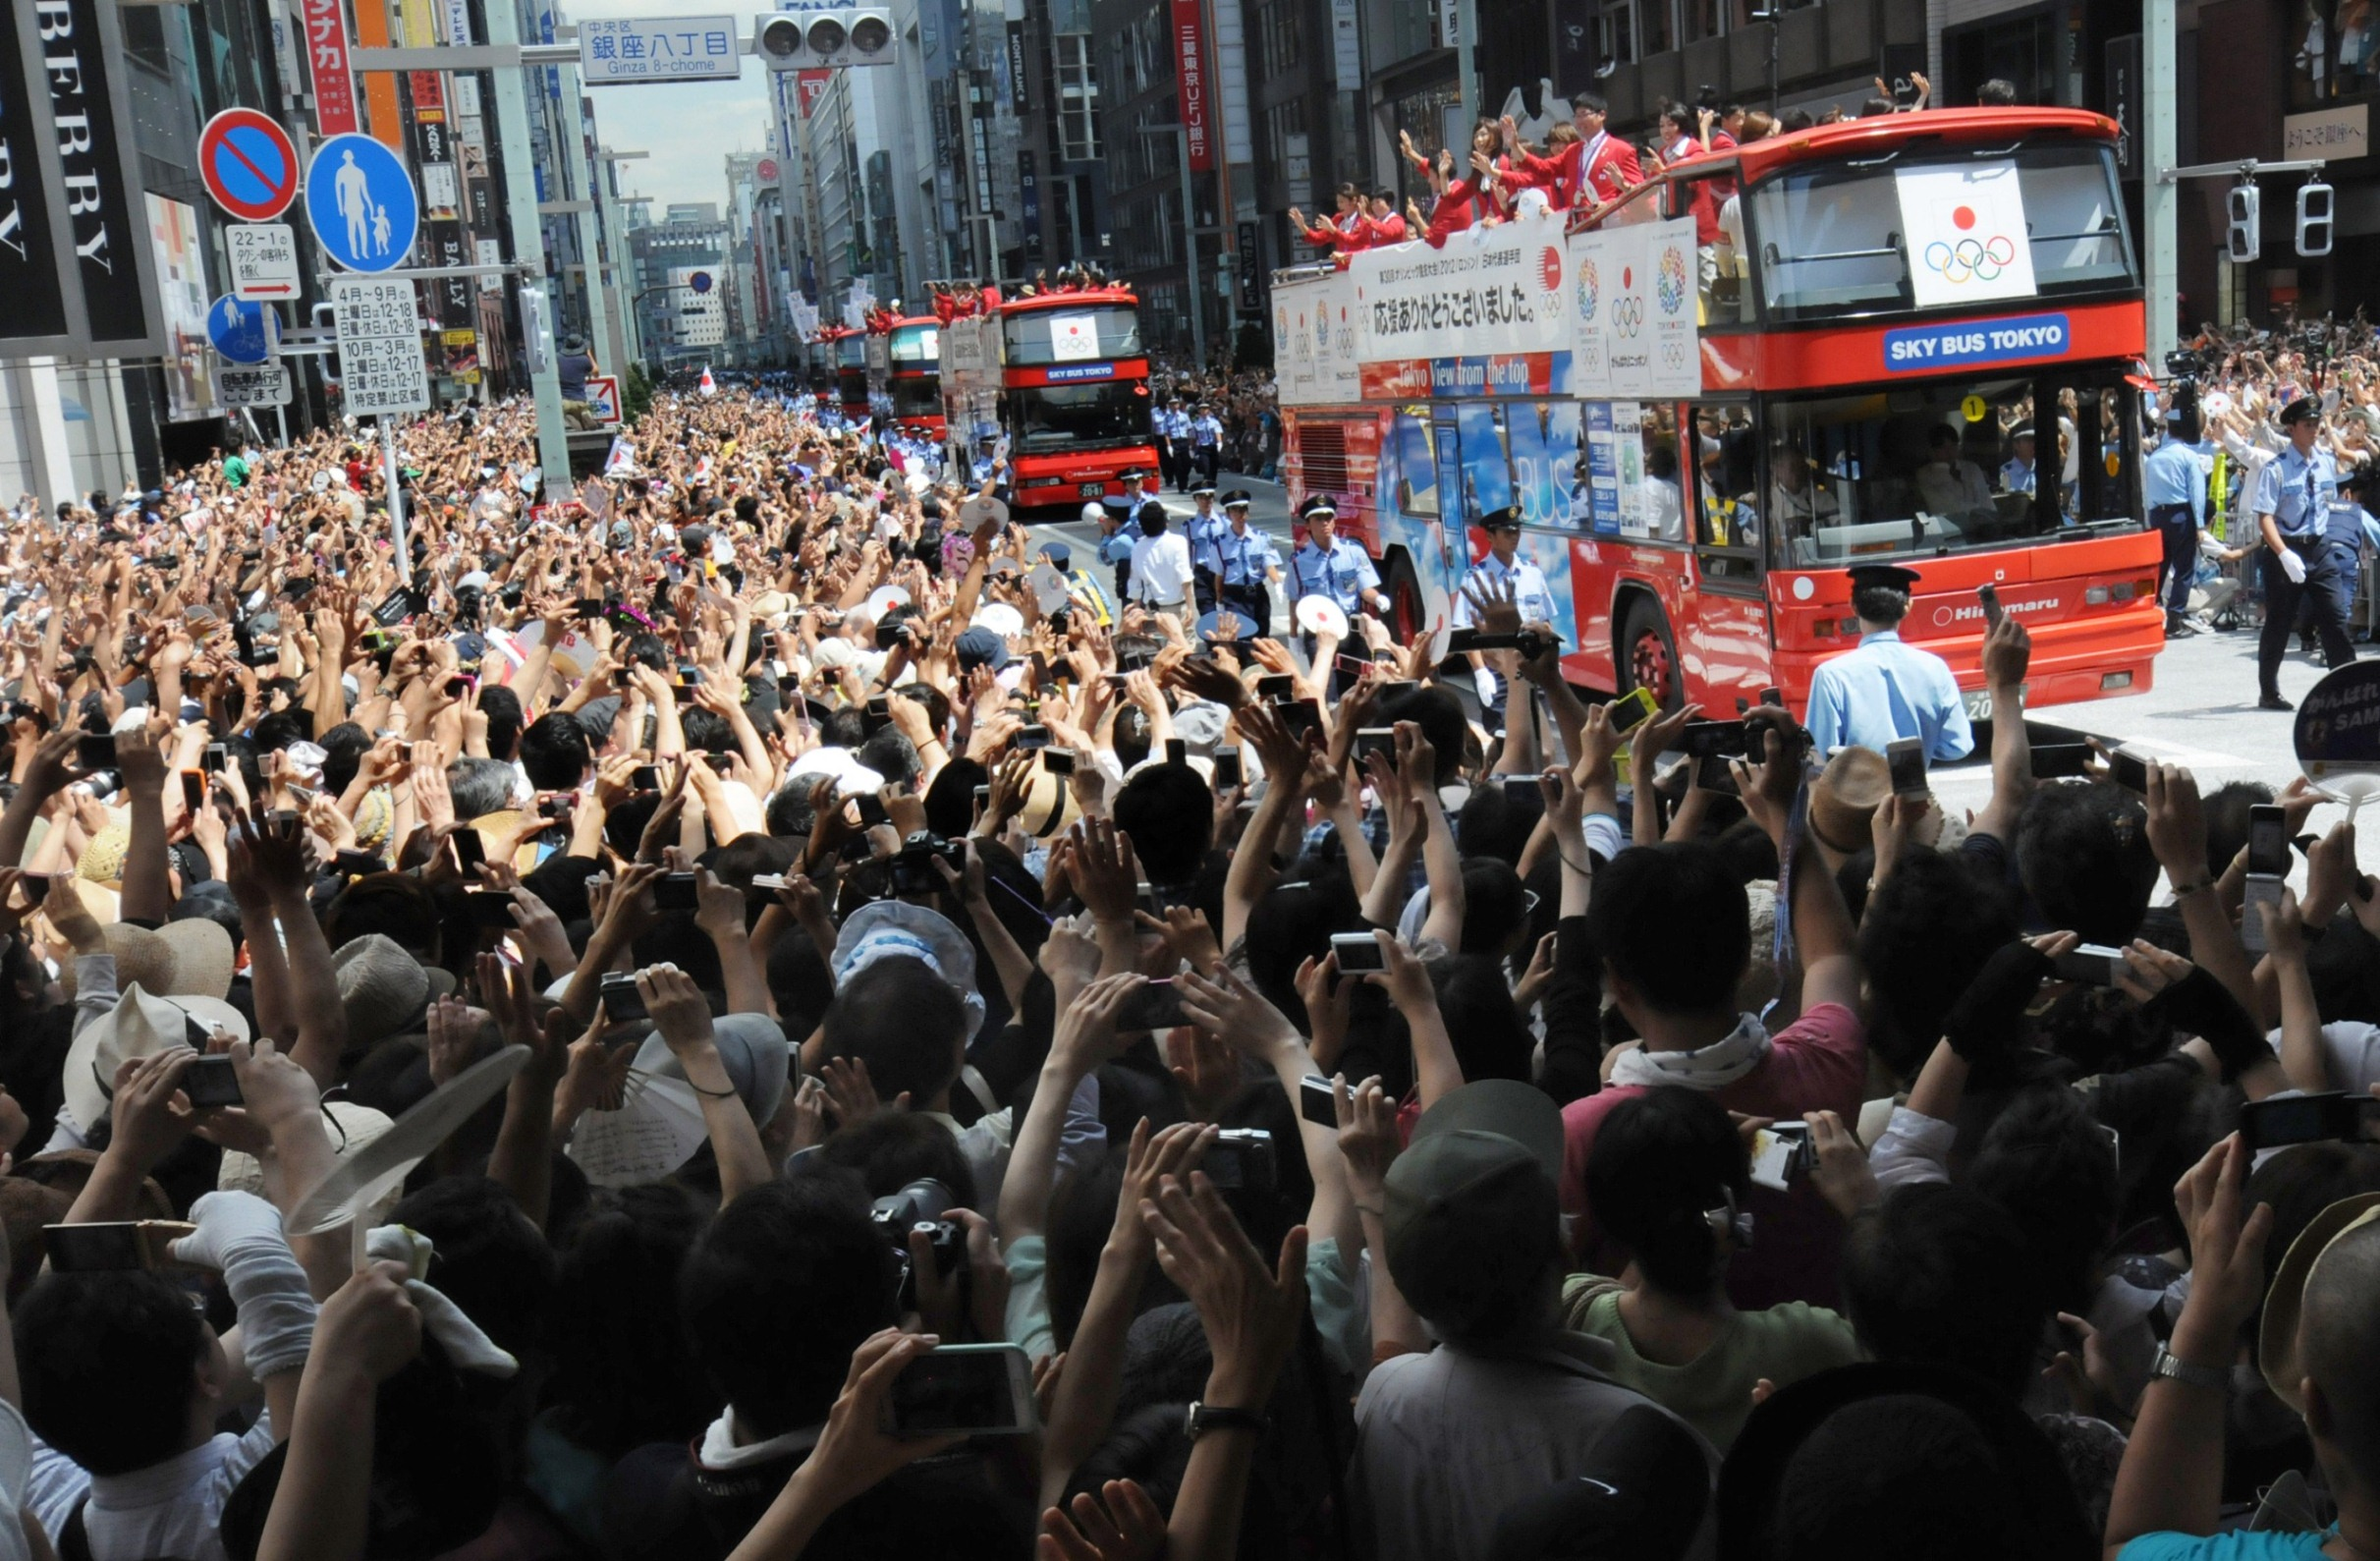 London 2012 victory parade on double decker bus 2